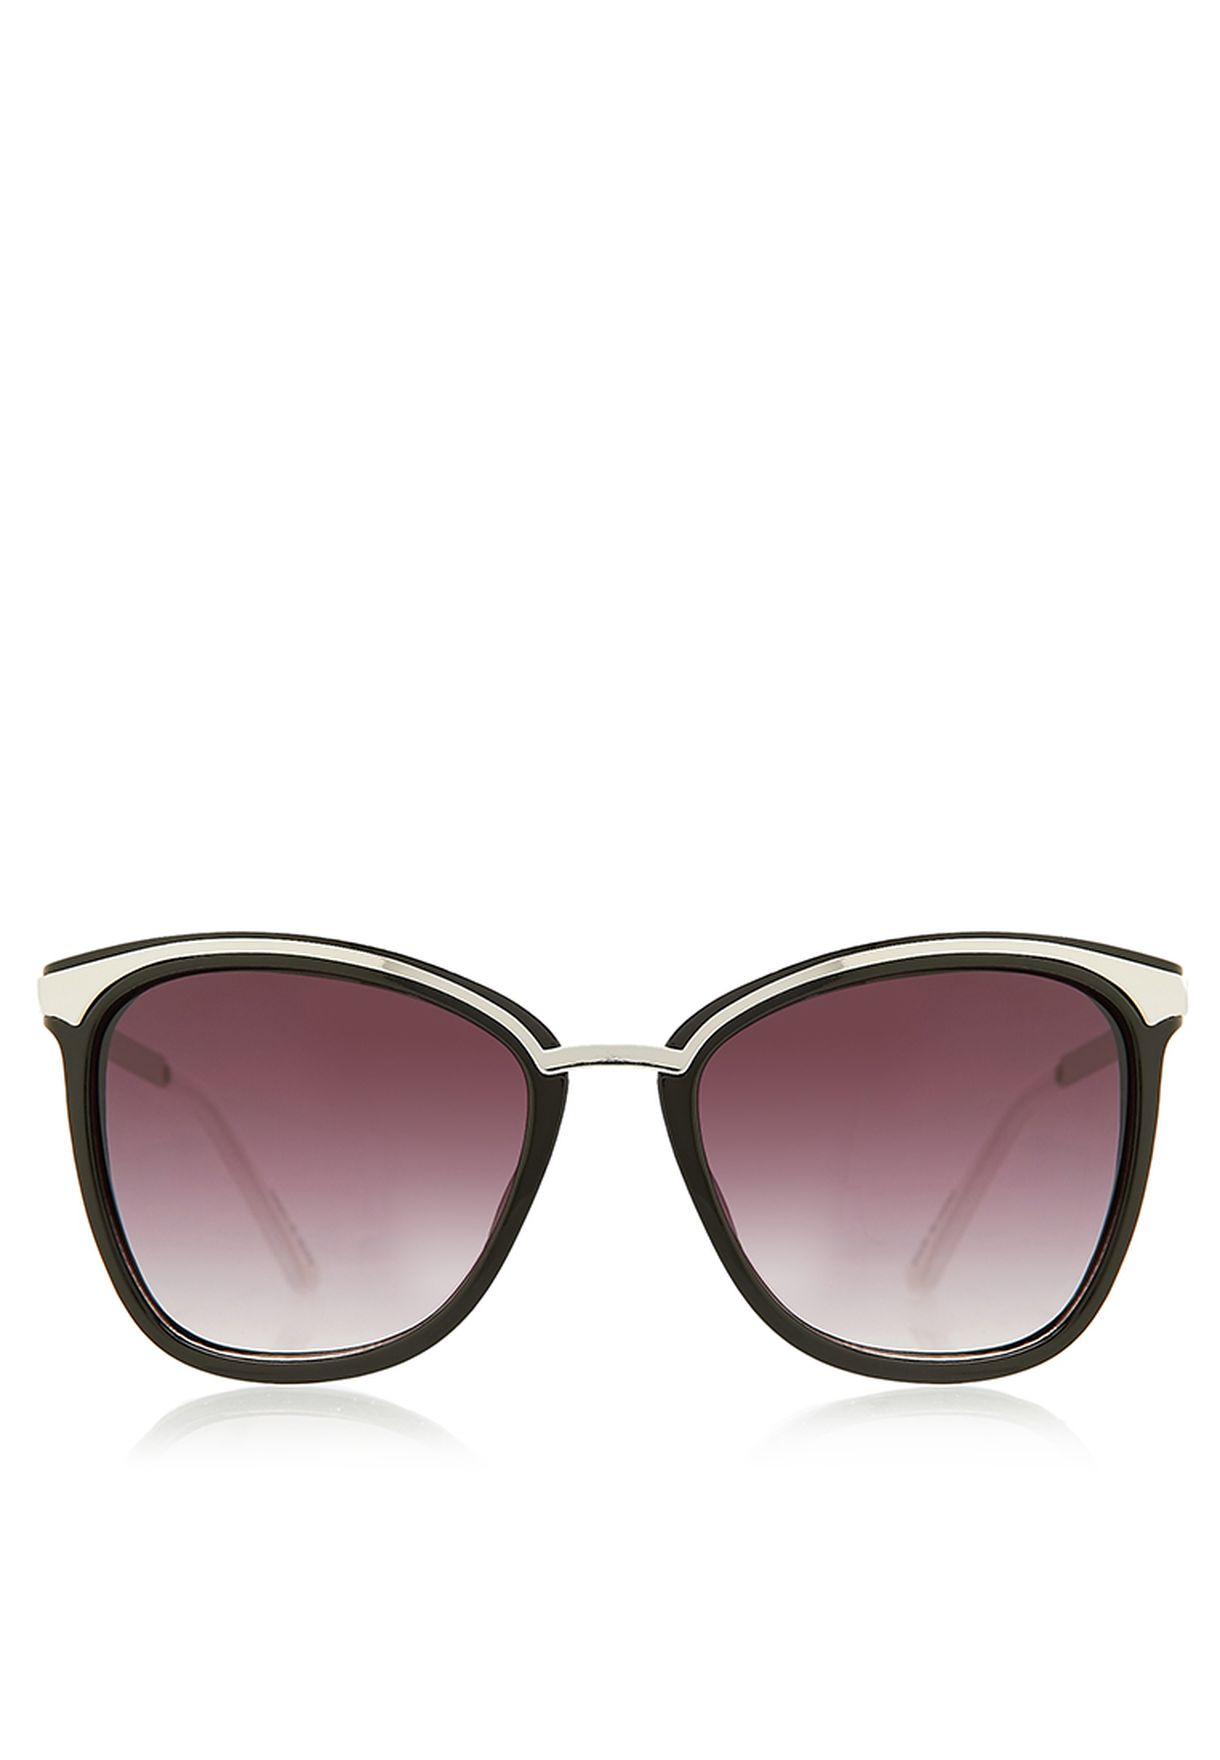 762ce9ddcb69 Shop Jeepers Peepers black Zara Trendy Sunglasses for Women in UAE ...